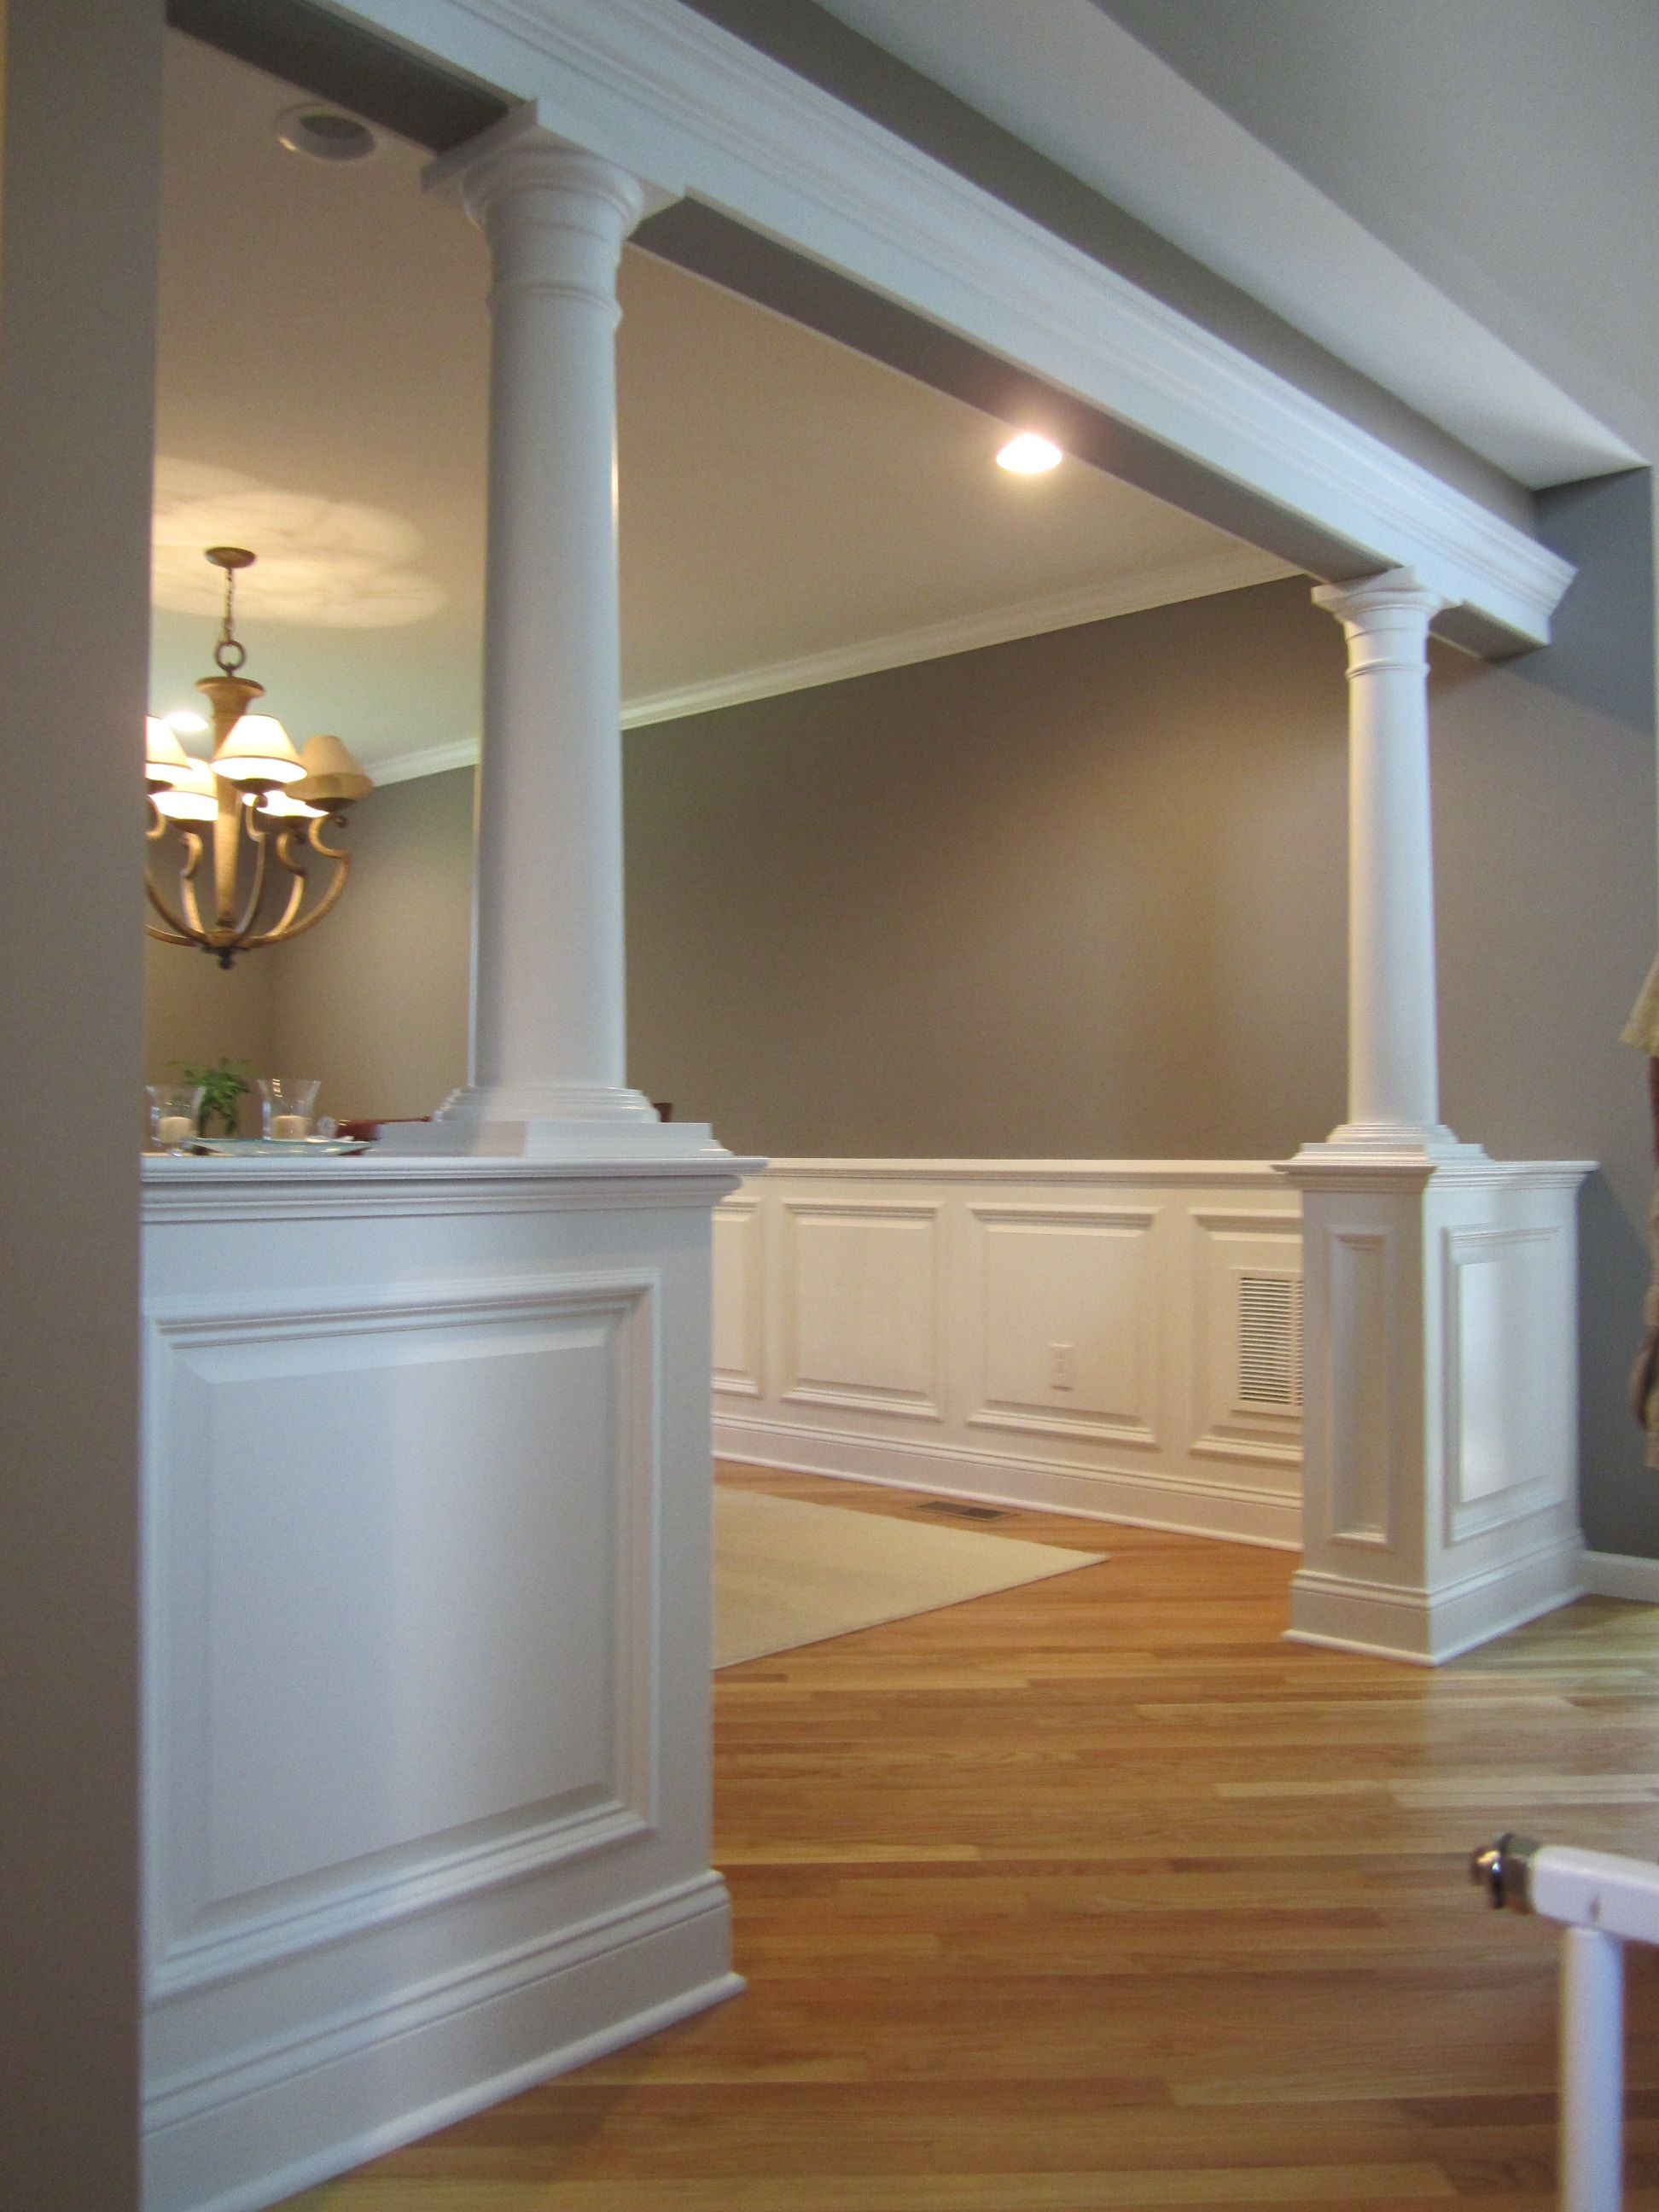 Half wall with columns bolton ct decor ideas Interior columns design ideas